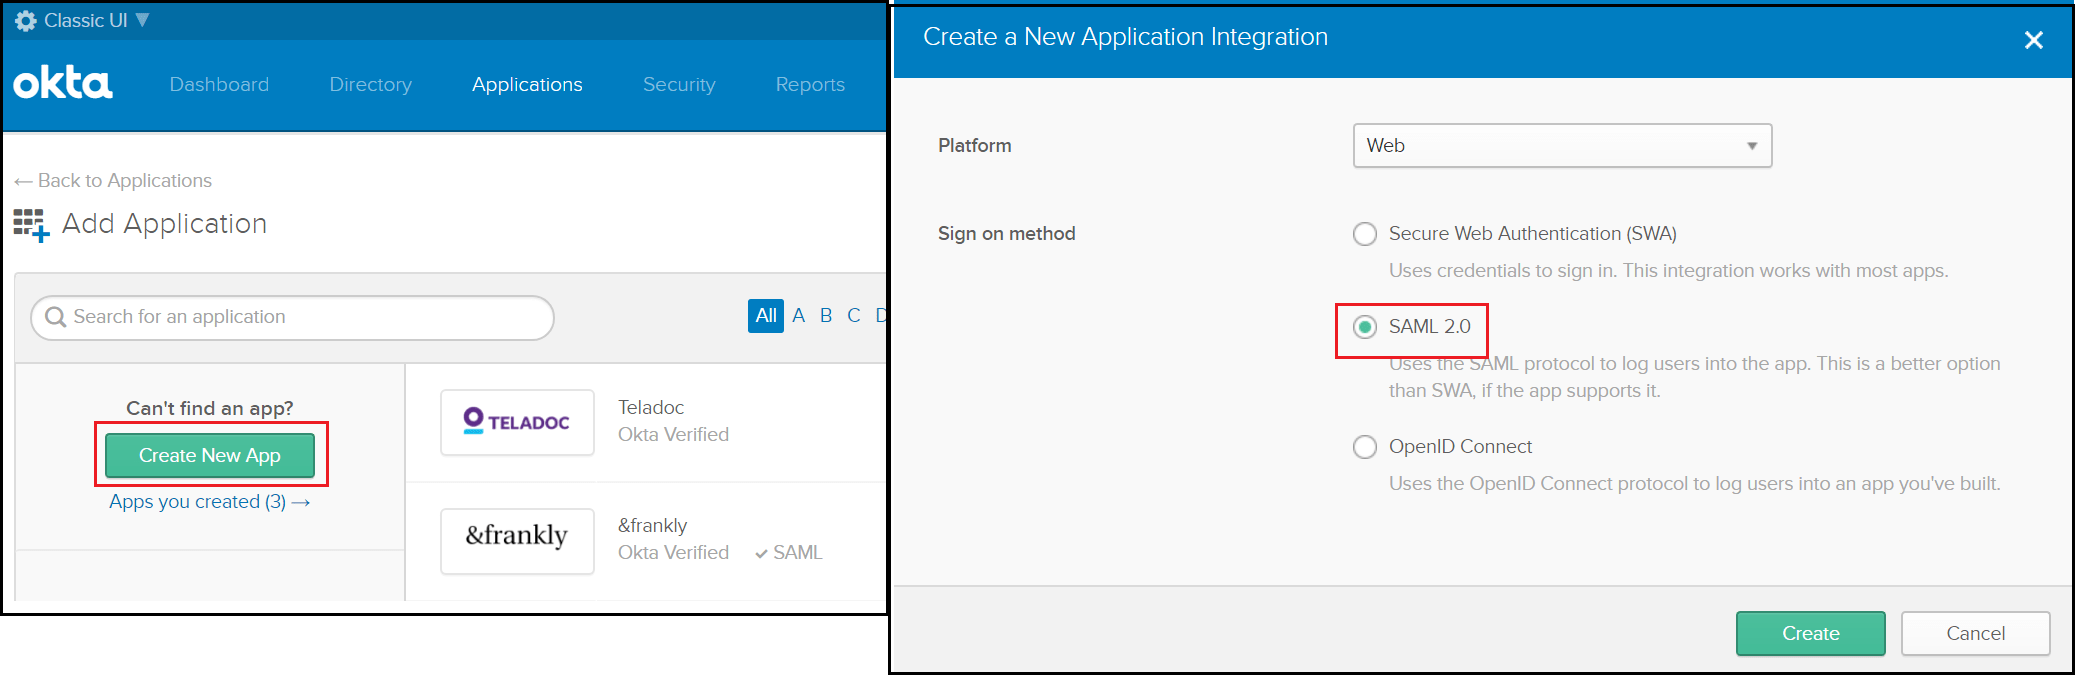 Okta Single Sign On SSO okta SAML 2.0